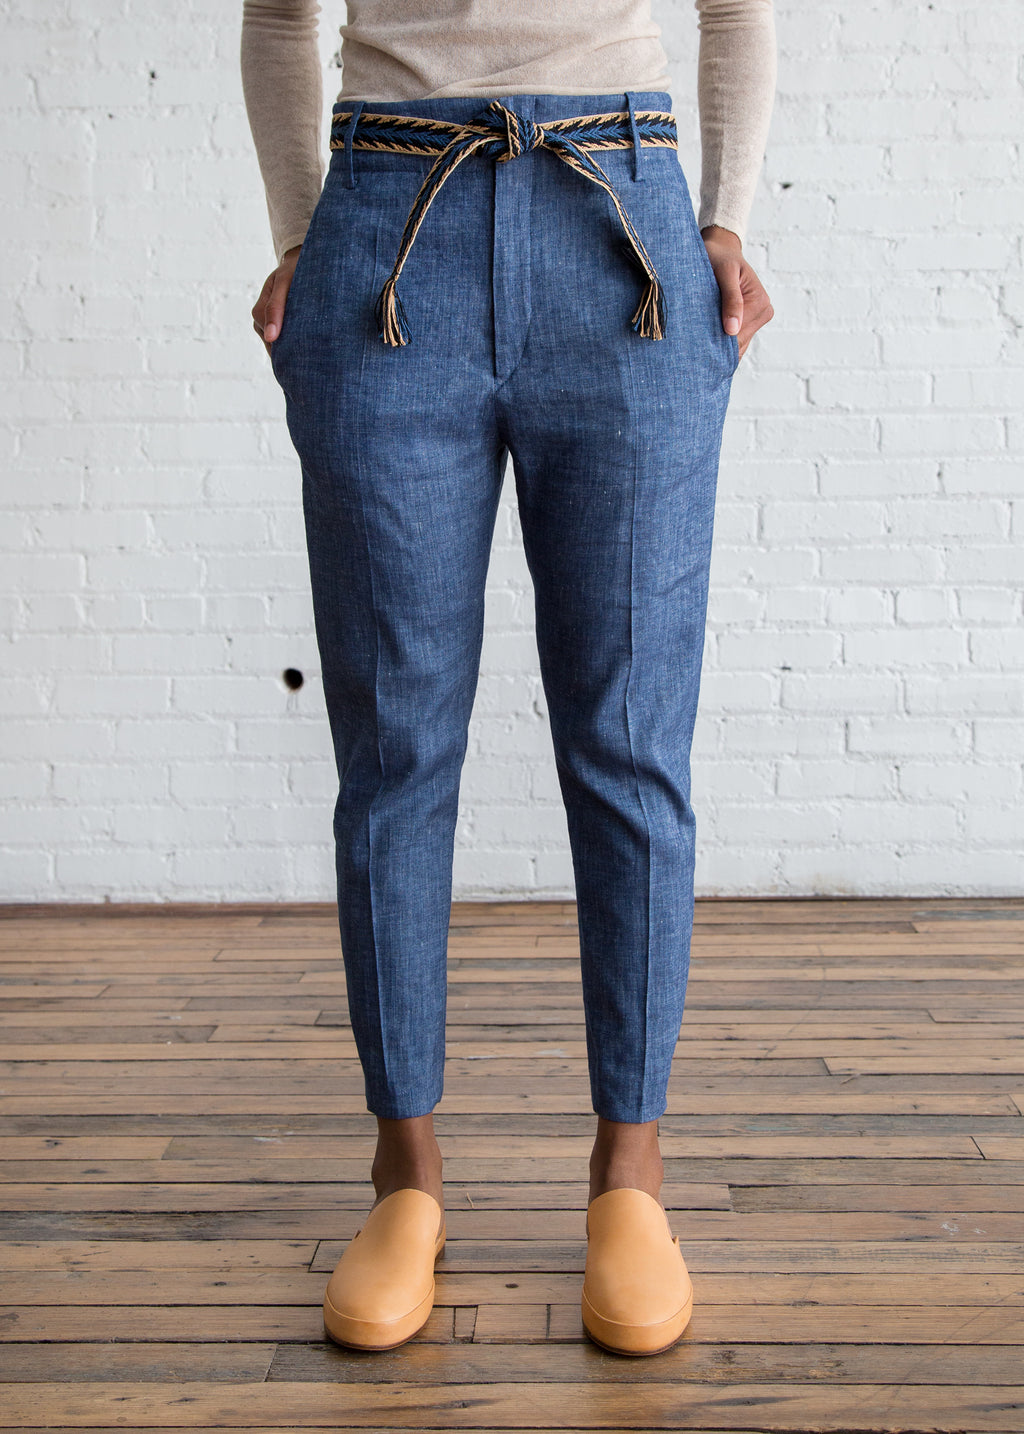 Oah Pants Blue $96